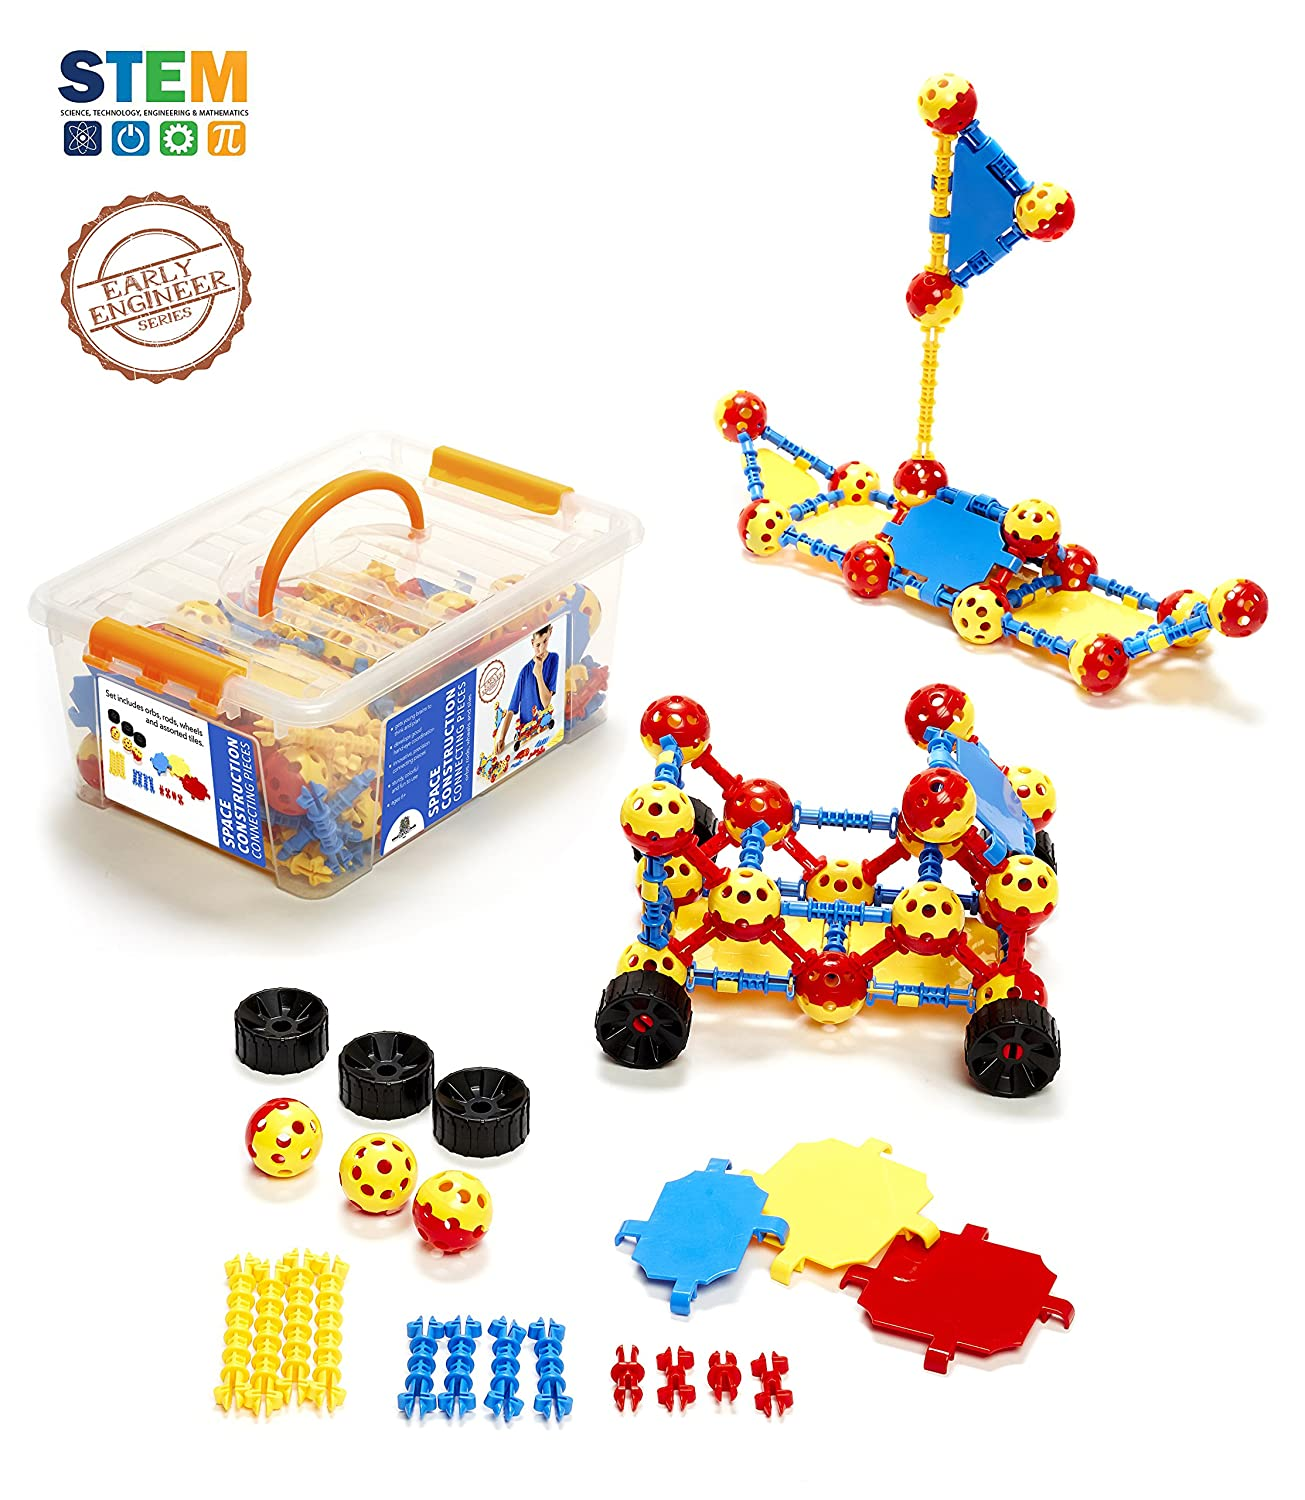 Amazon Space Construction Engineering Building Toys for Kids